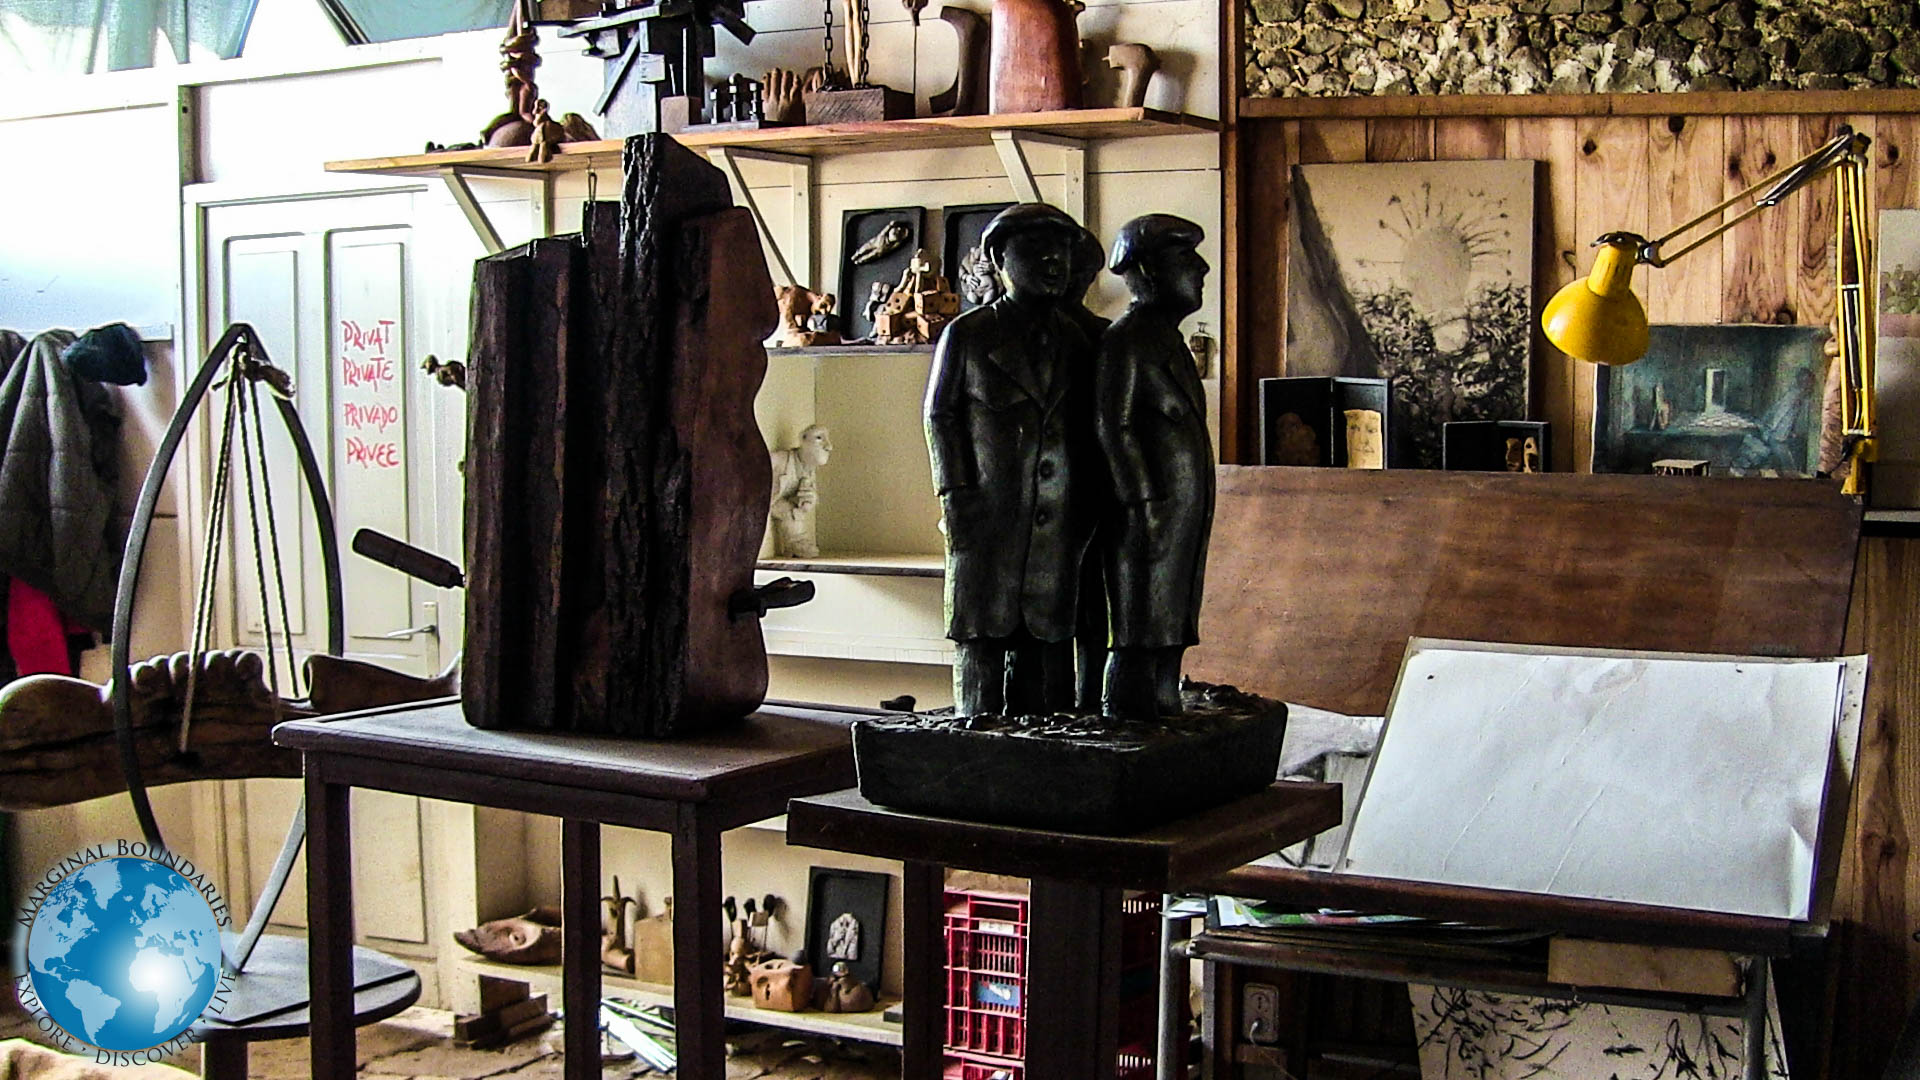 The interior of Carlos Maronna's workshop outside of Girona